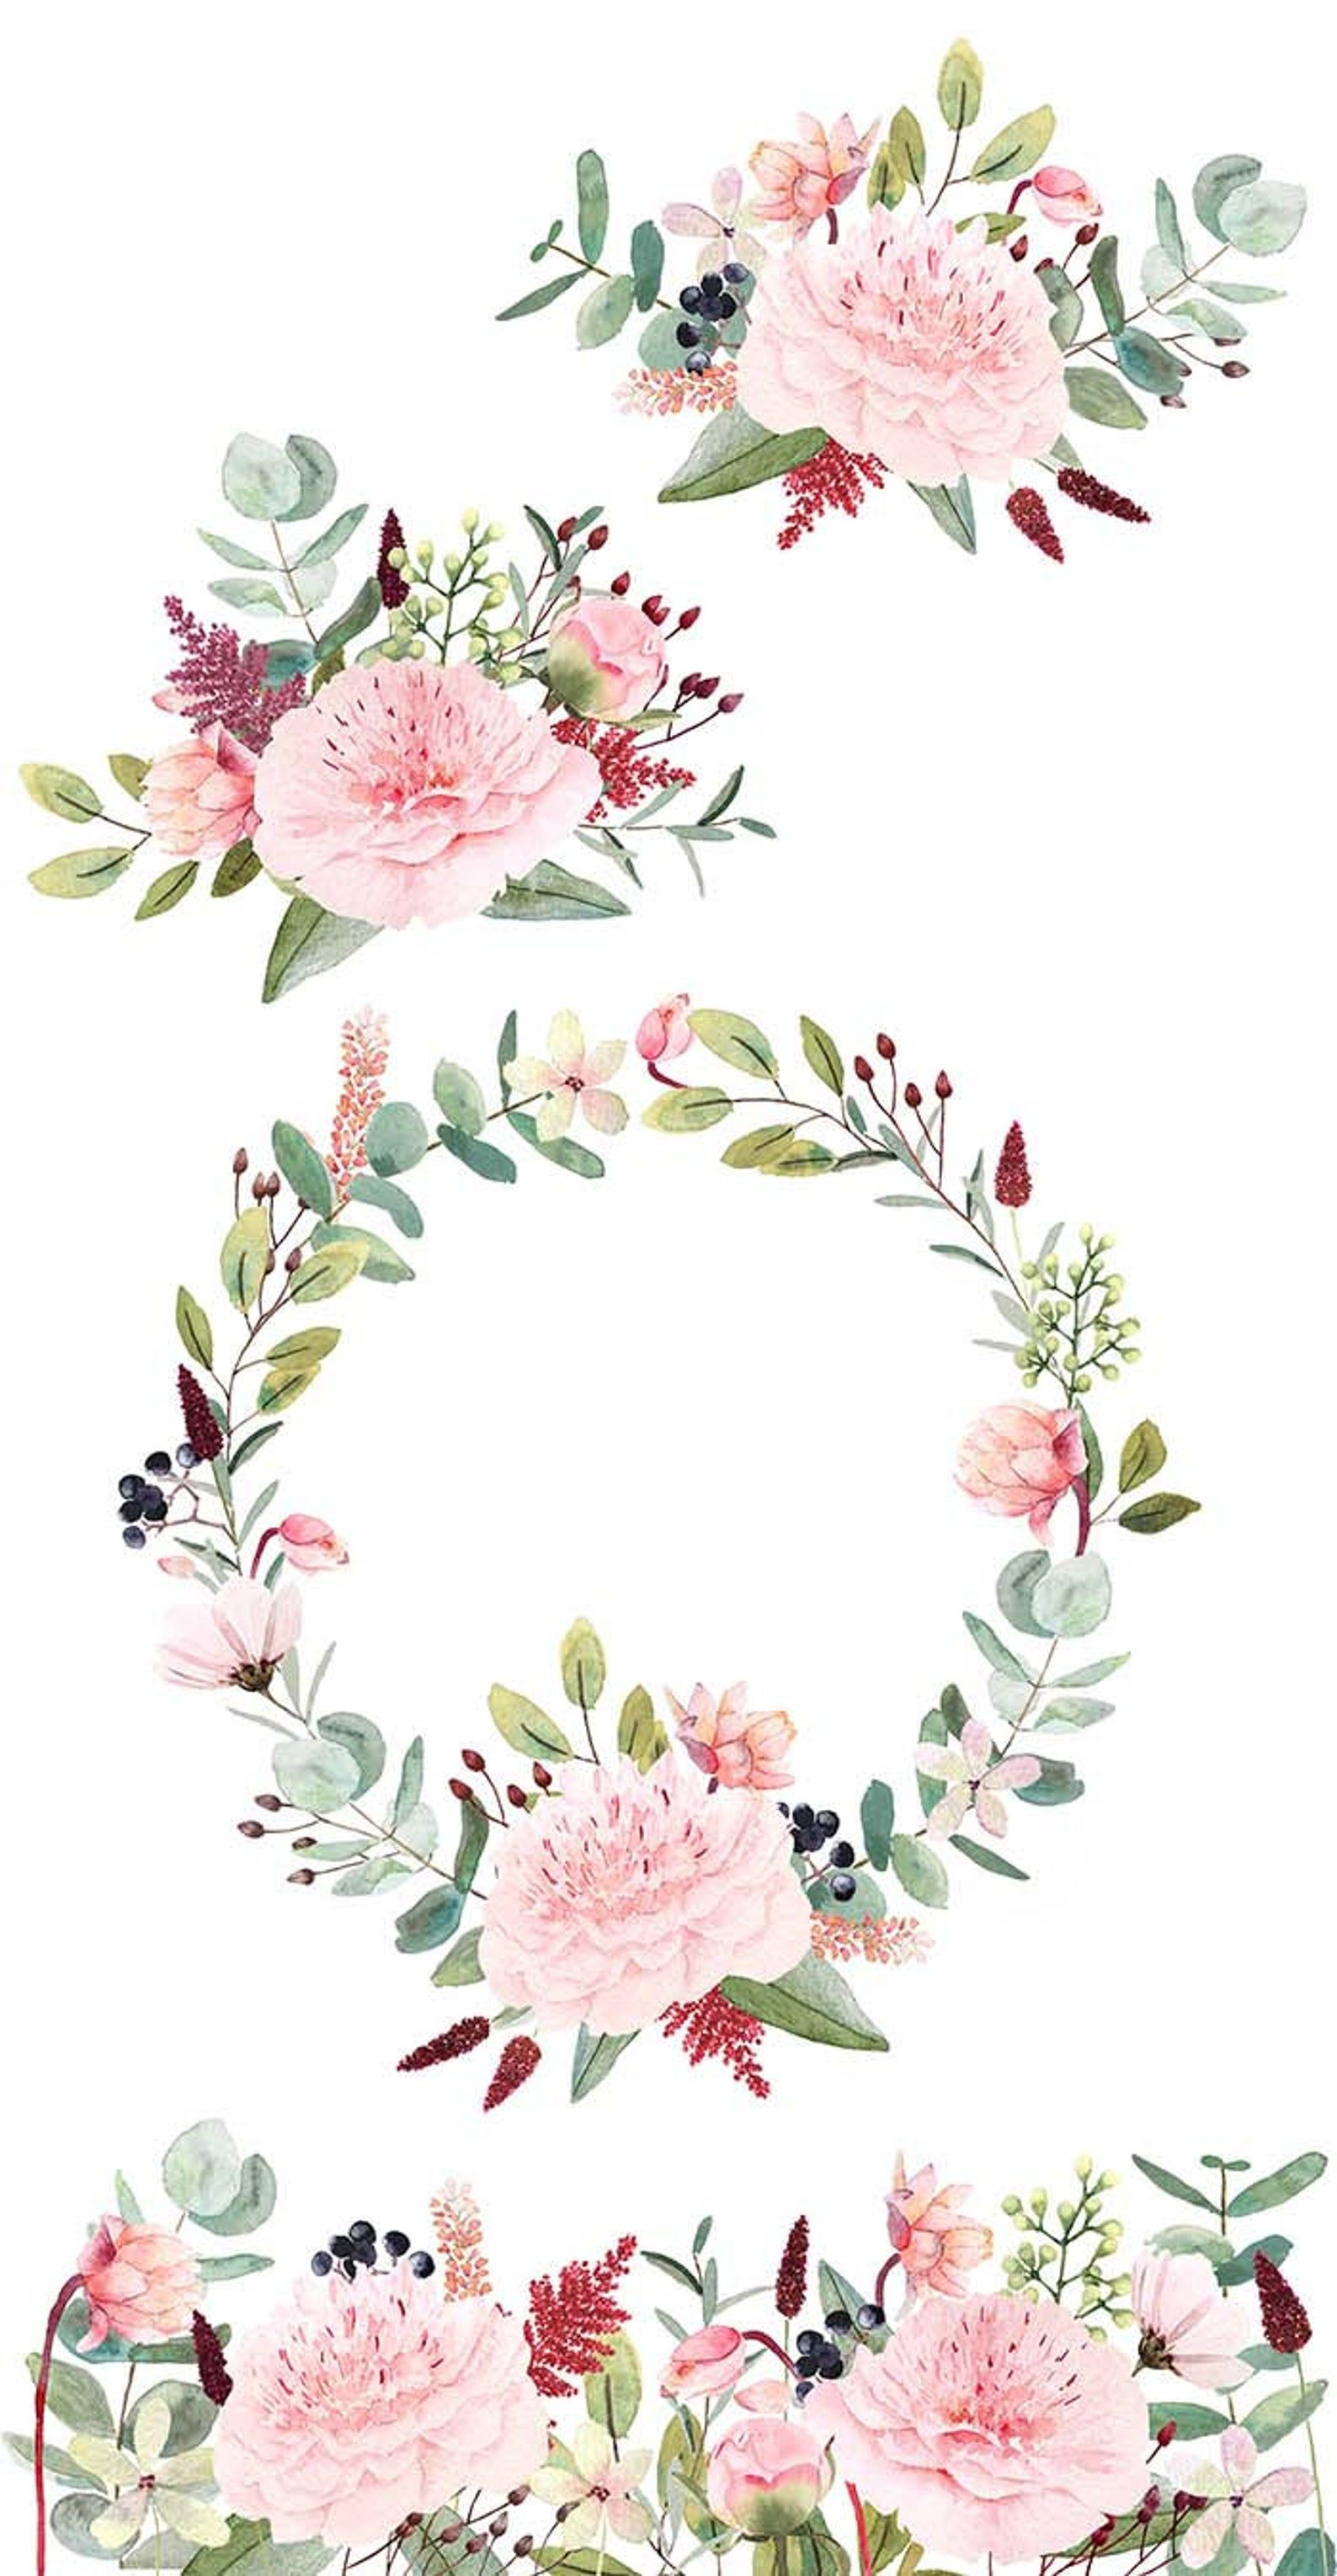 Watercolor Flower Clipart Water Color Floral Clipart Peonies Eucalyptus Flower Bouquet Floral Pattern Berries Flower Wreath Pink Green Floral Watercolor Flower Clipart Watercolor Flowers